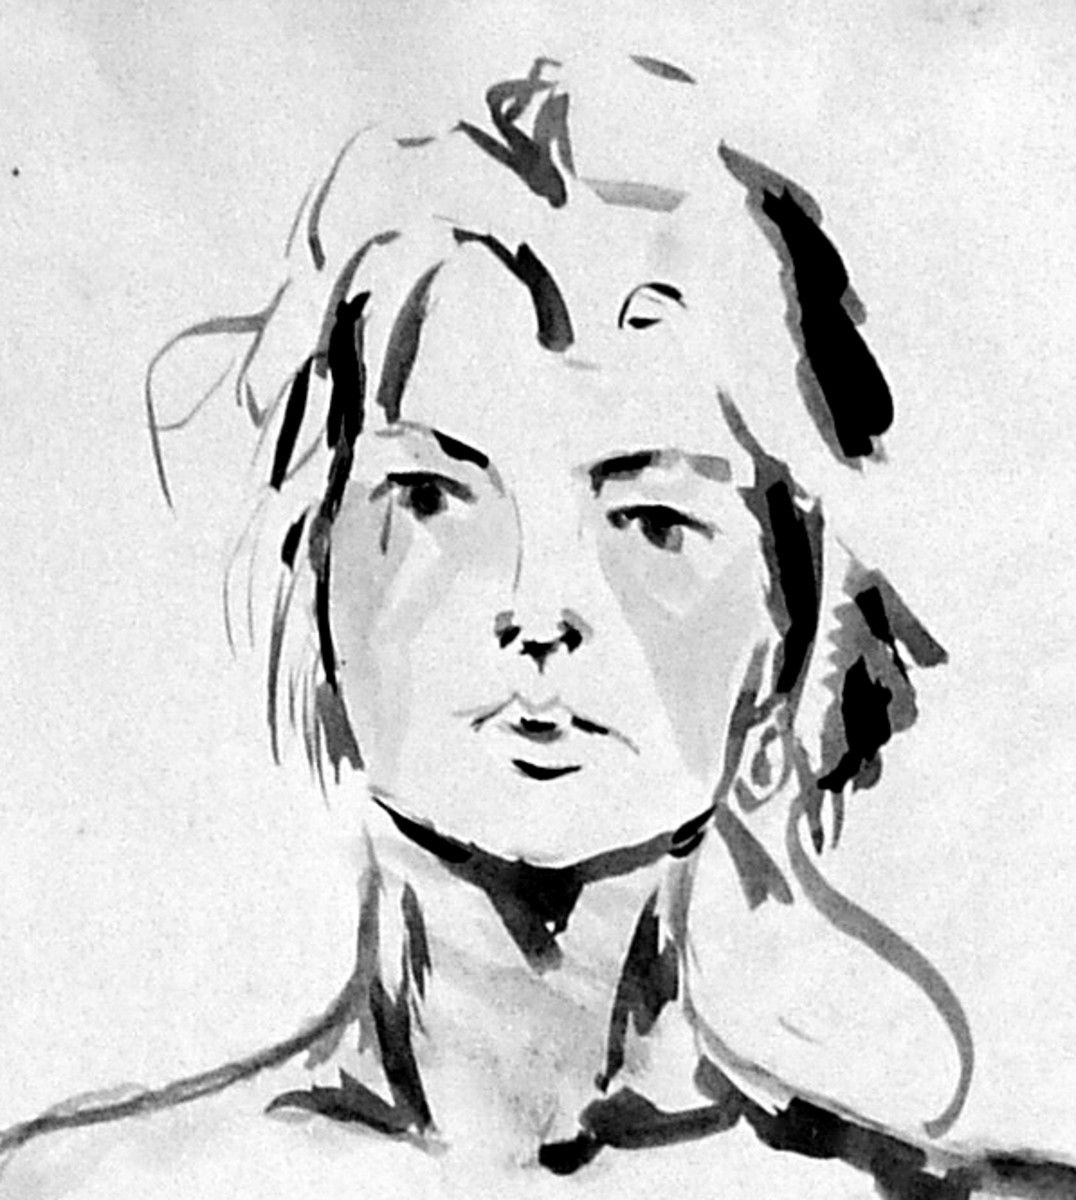 A life drawing/painting created with gouache, thick paint and washes of grayscale tones, a nice example of mark making with a flat brush showing how the brush can be used to lay down think and thin lines.